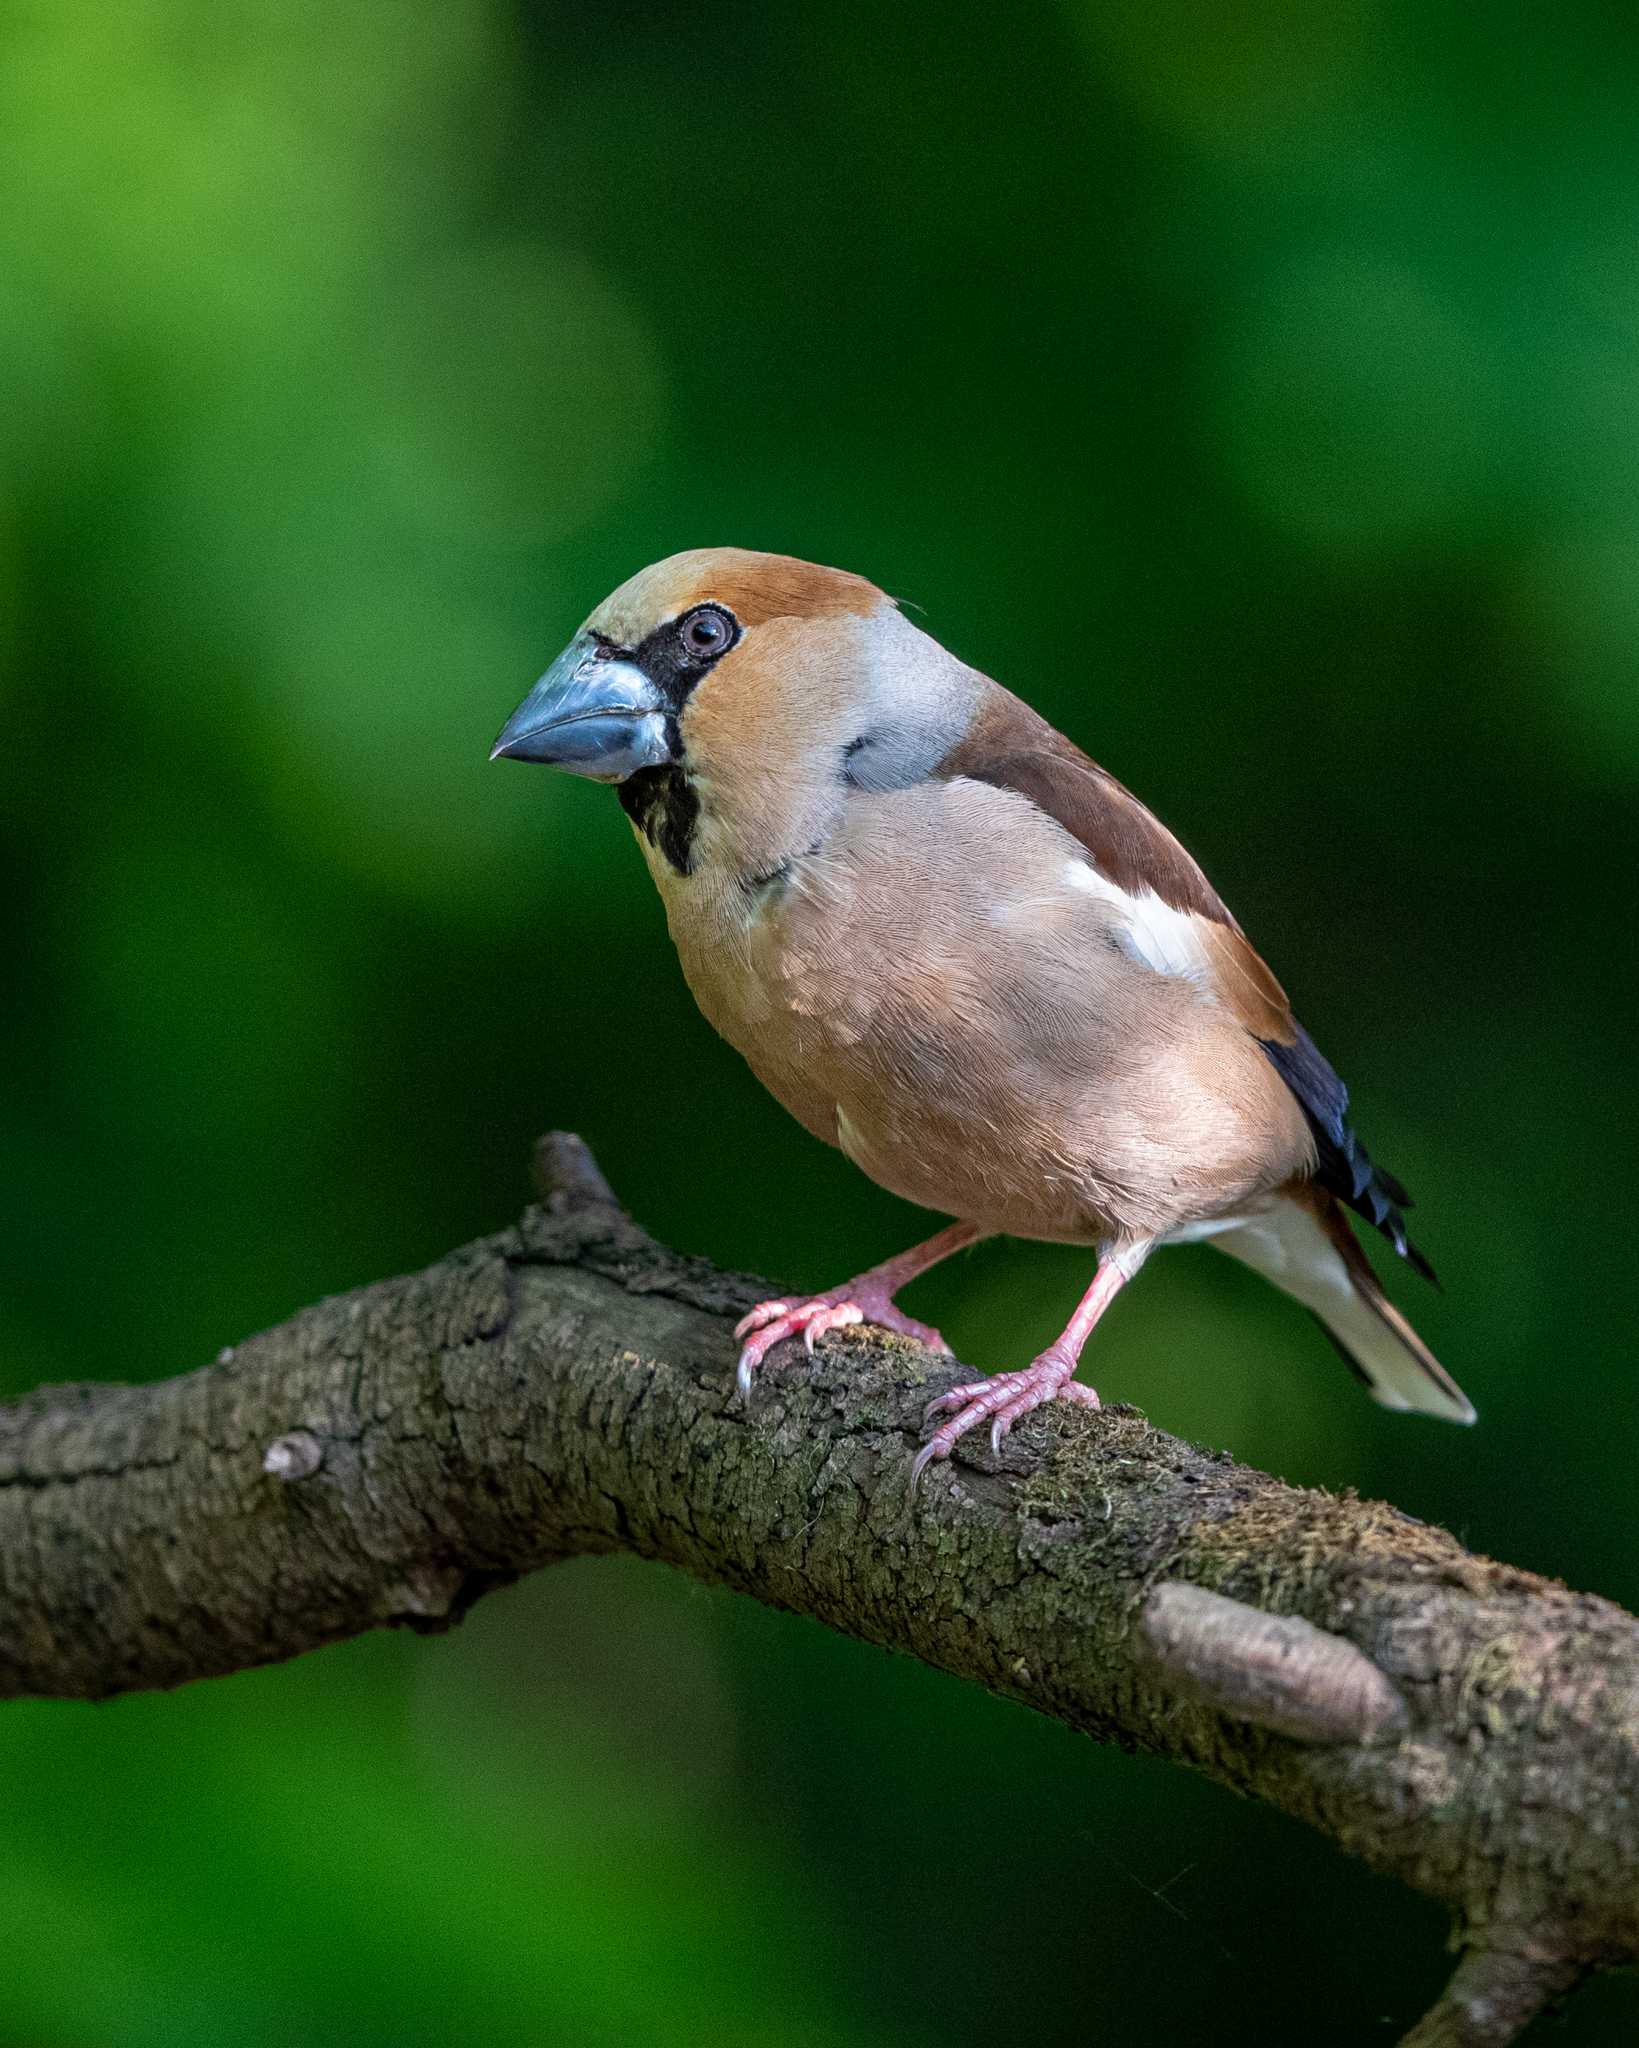 hawfinch noise reduction _A8I4282.jpg